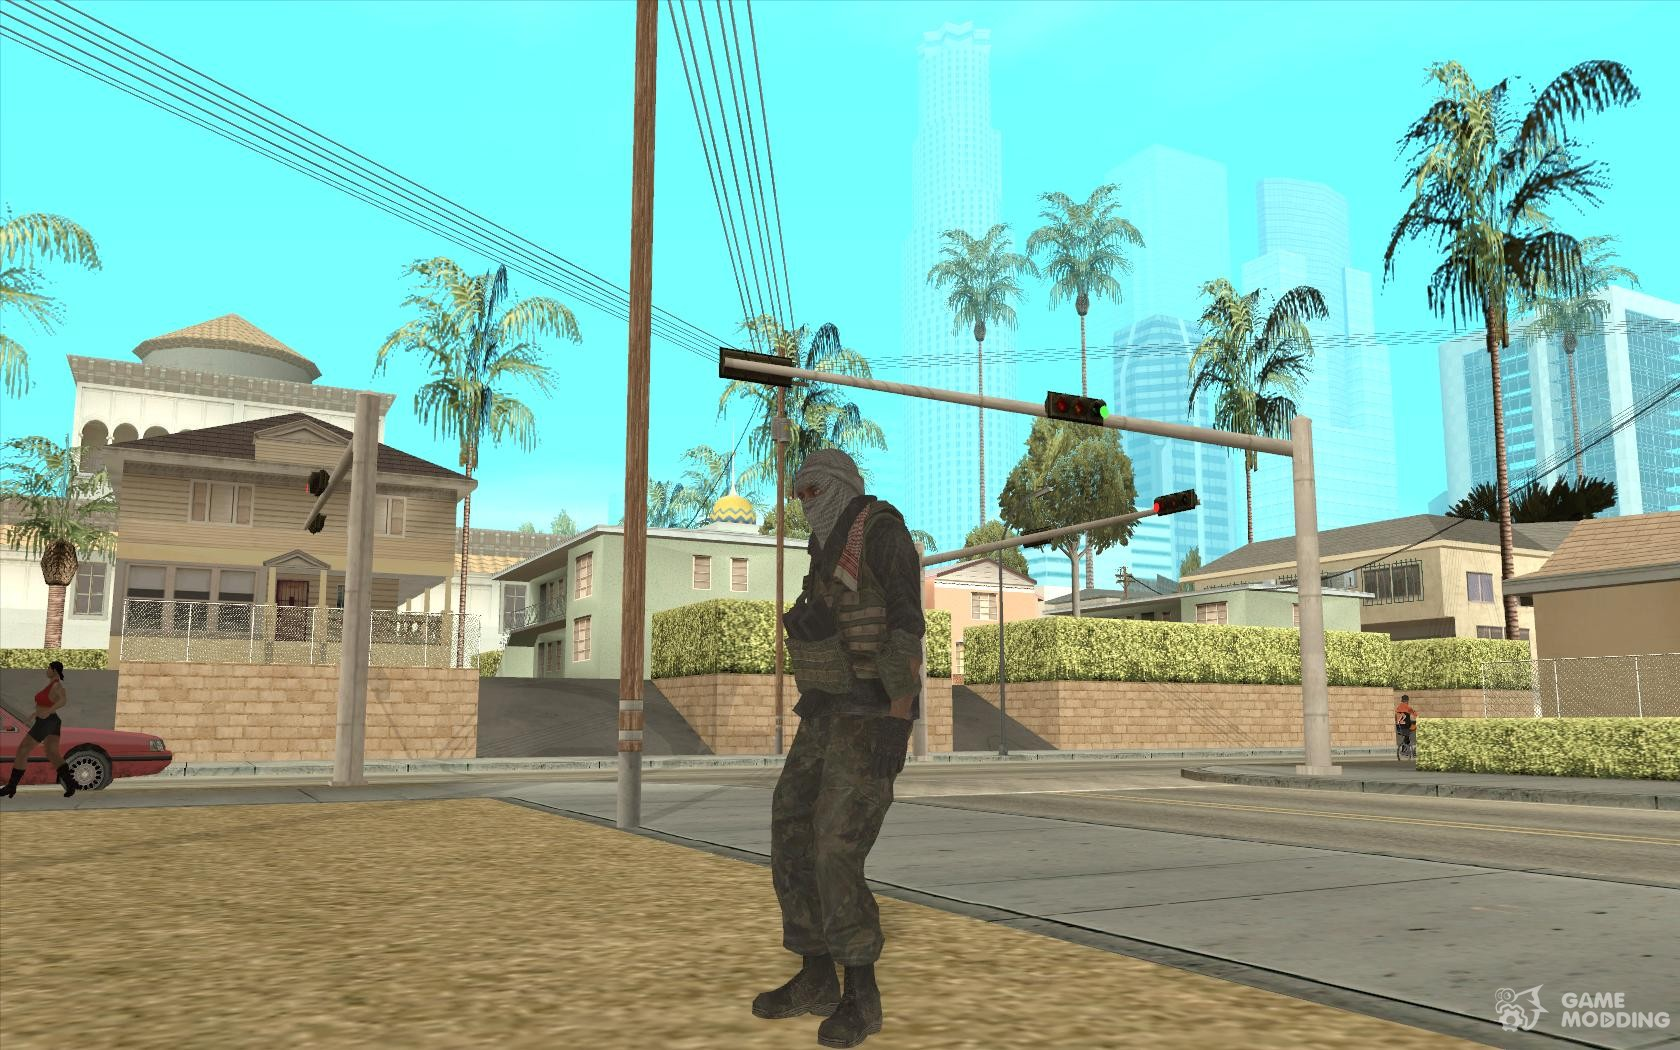 muslim singles in san andreas Secrets of gta sa alternative hidden cutscenes phone calls, fat cj, big smoke, learning to fly, black project, stowaway, missions and more thanks for watc.